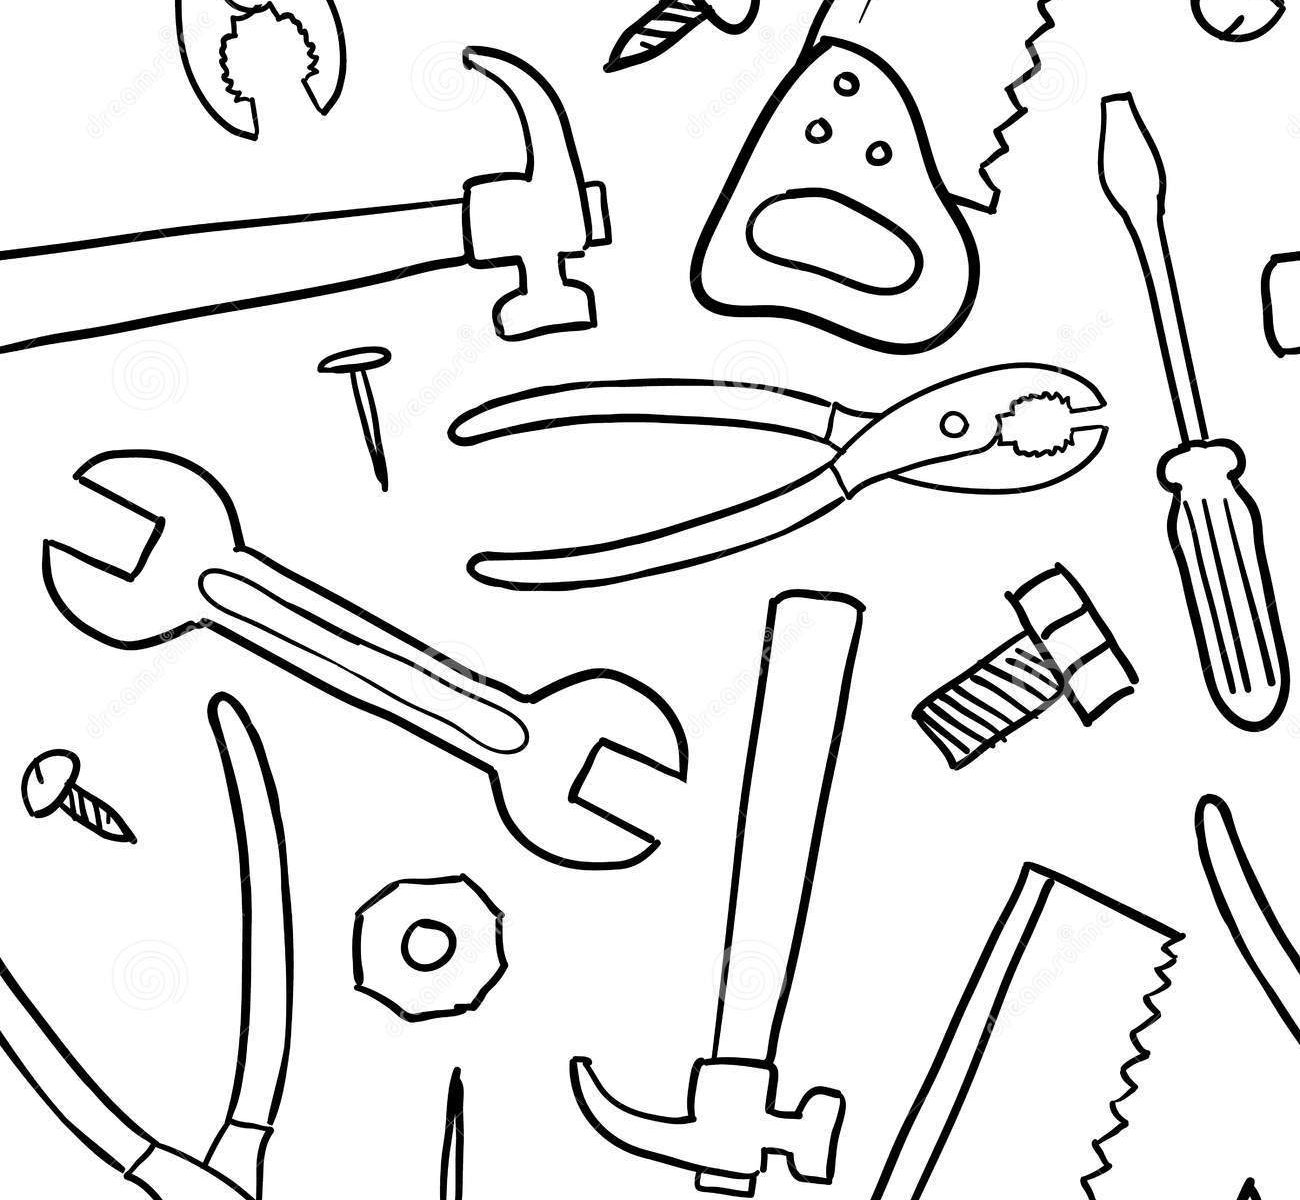 Construction Tools Drawing At Getdrawings Com Free For